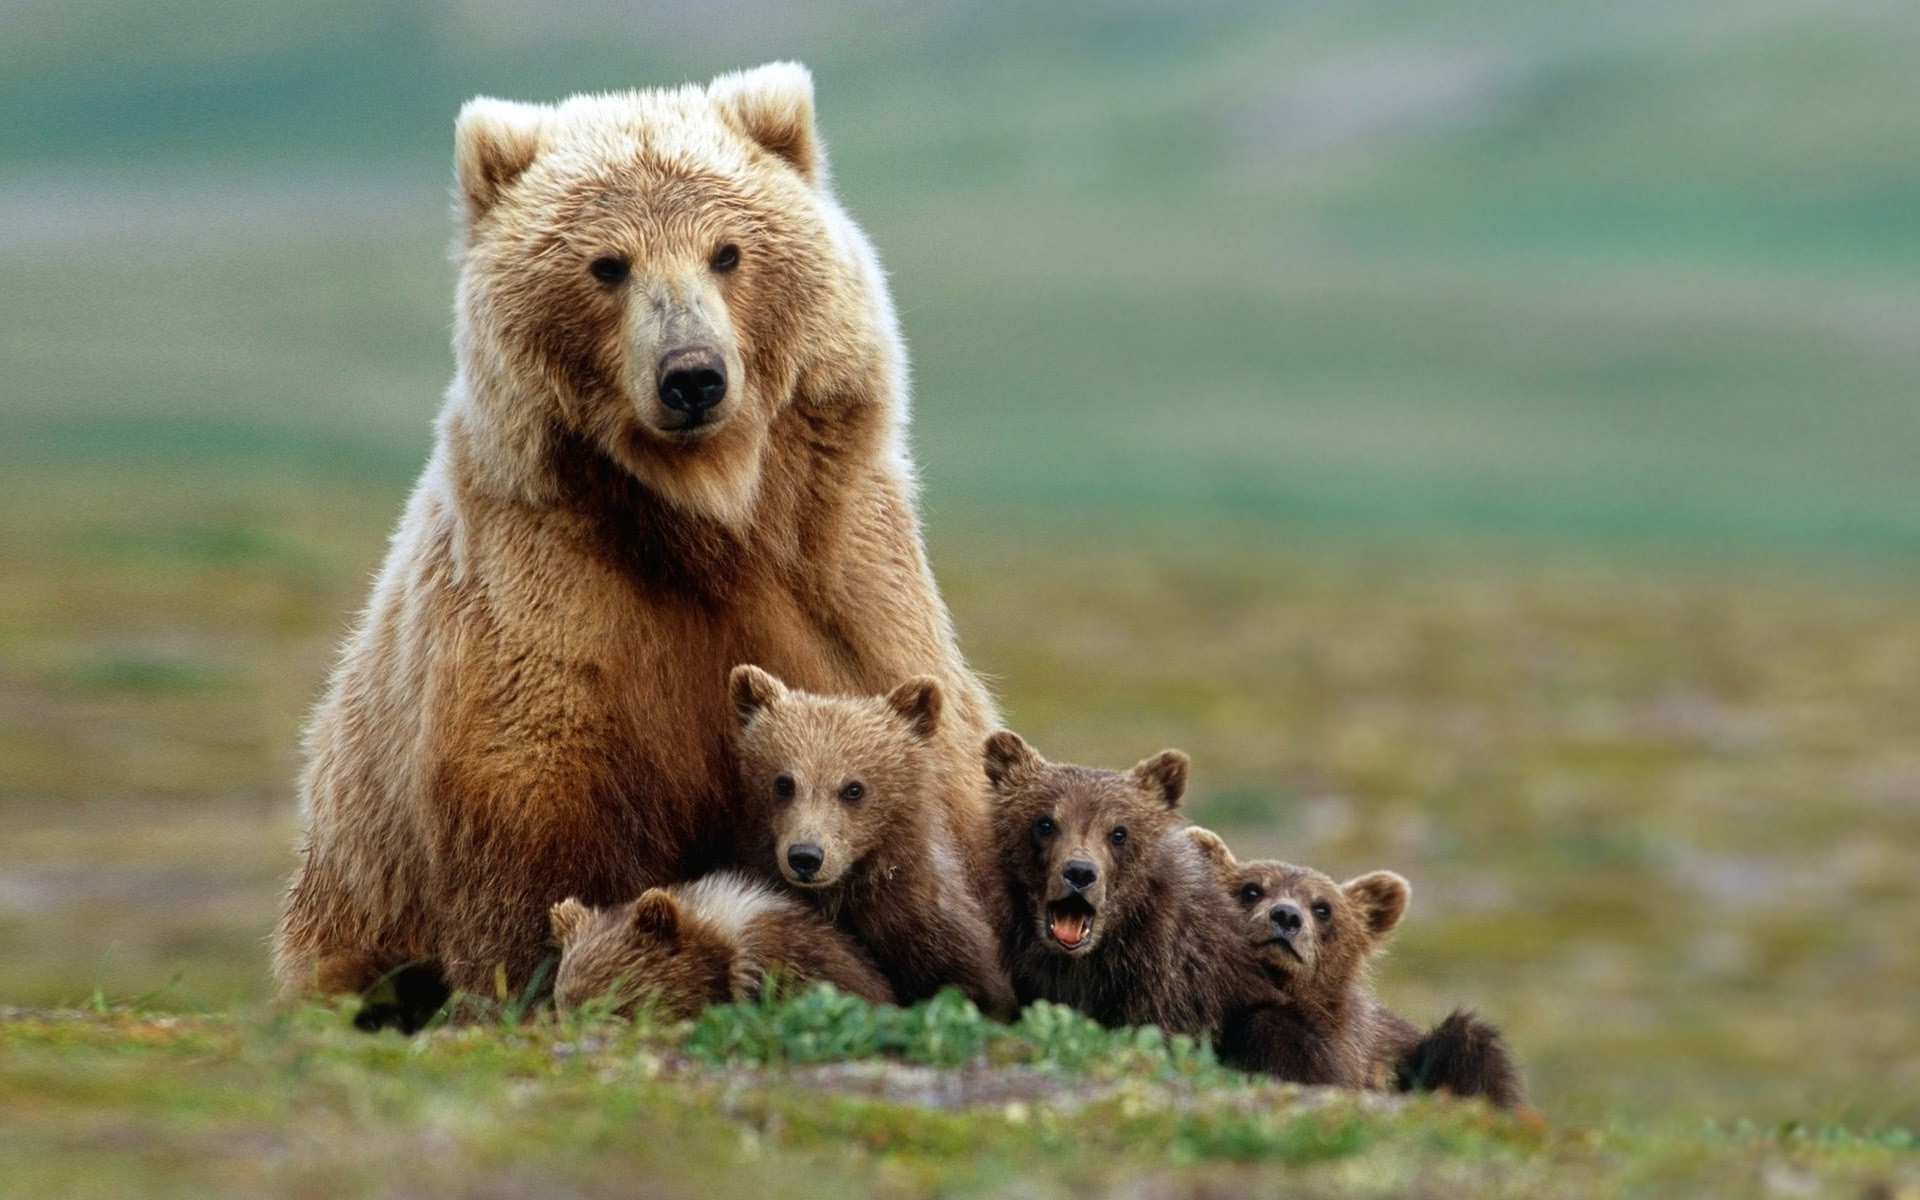 New 3d Desktop Wallpaper Hd 16 Nature Animals Grizzly Bears Bears Baby Animals Field